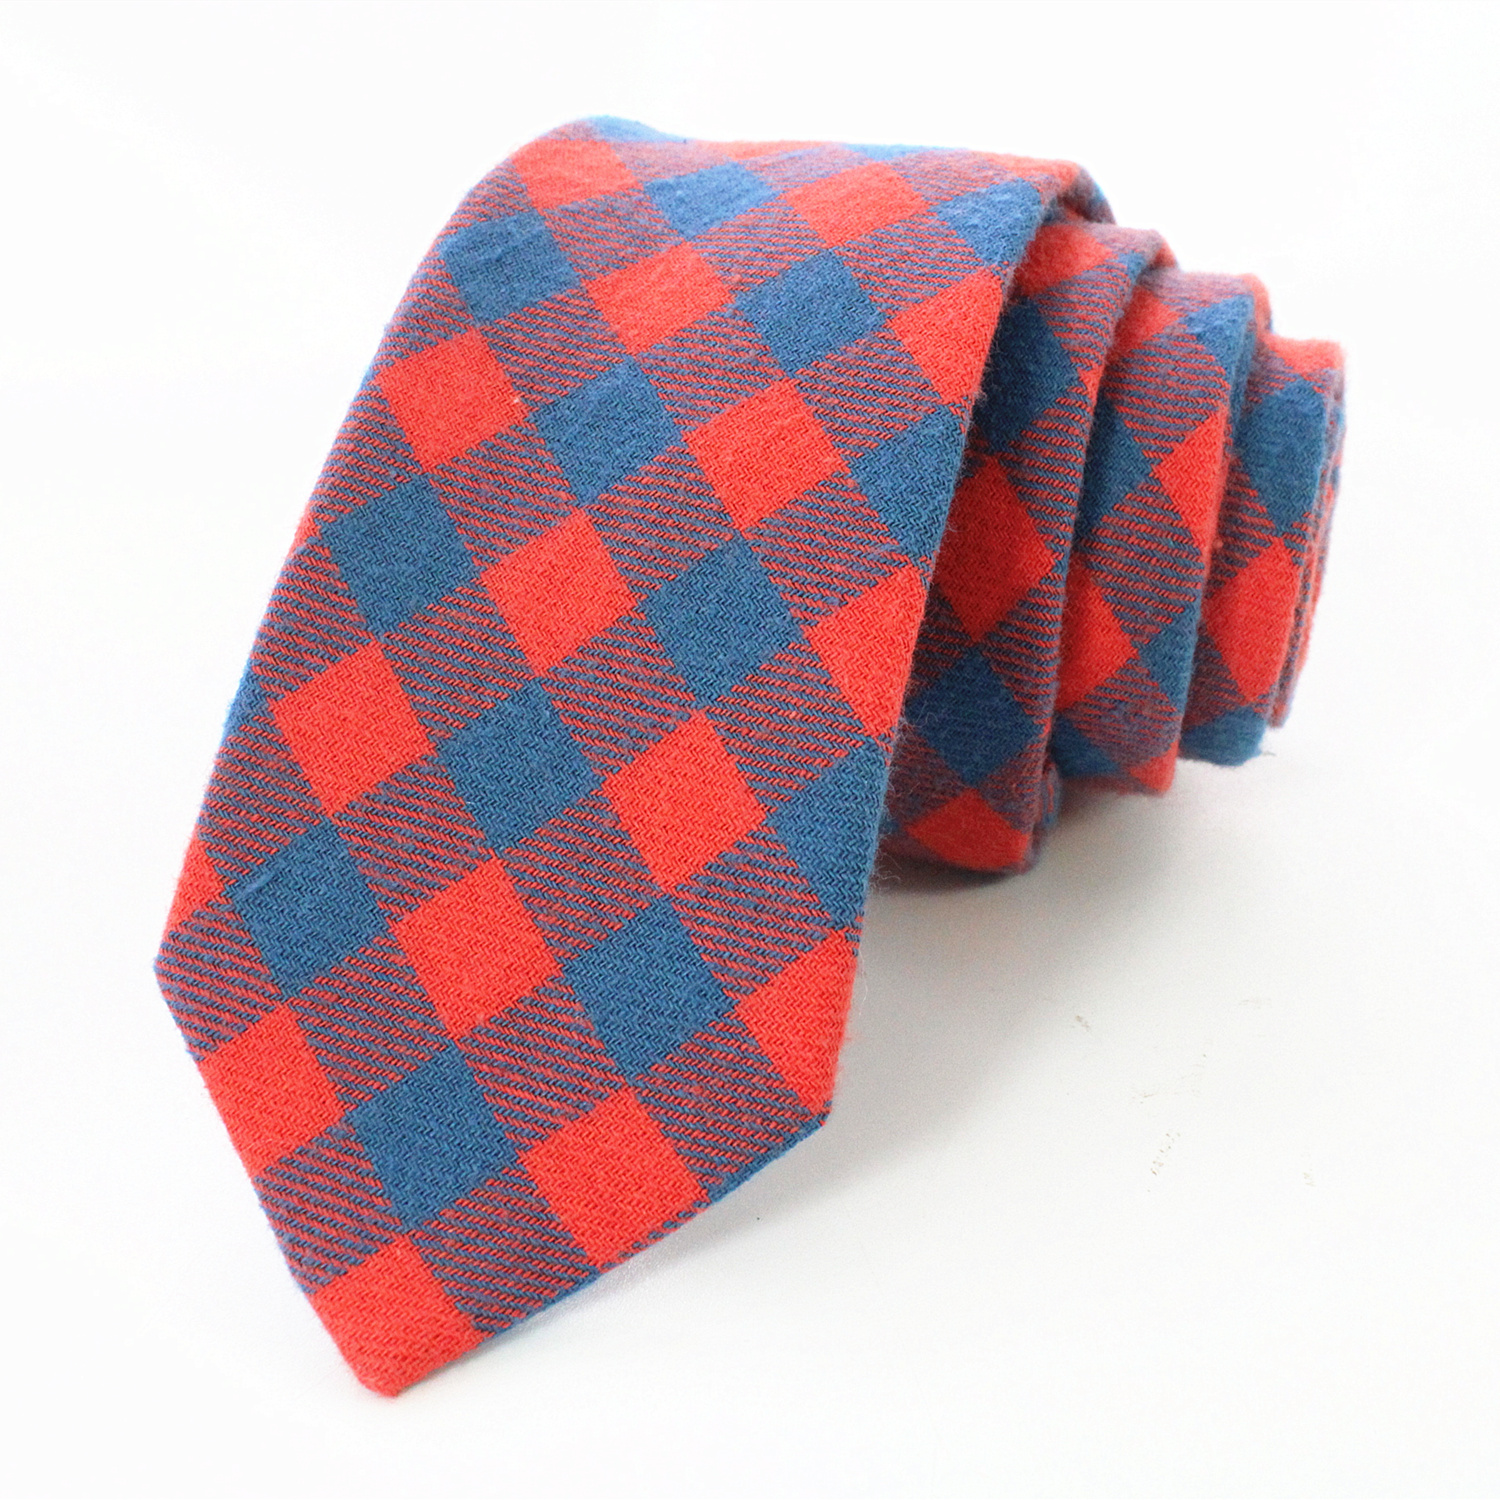 JEMYGINS Original Men's 8cm Classic Plaid Cashmere Wool Tie Handmade Men's Tie Red Yellow Blue Party Wedding Suit Neck Tie